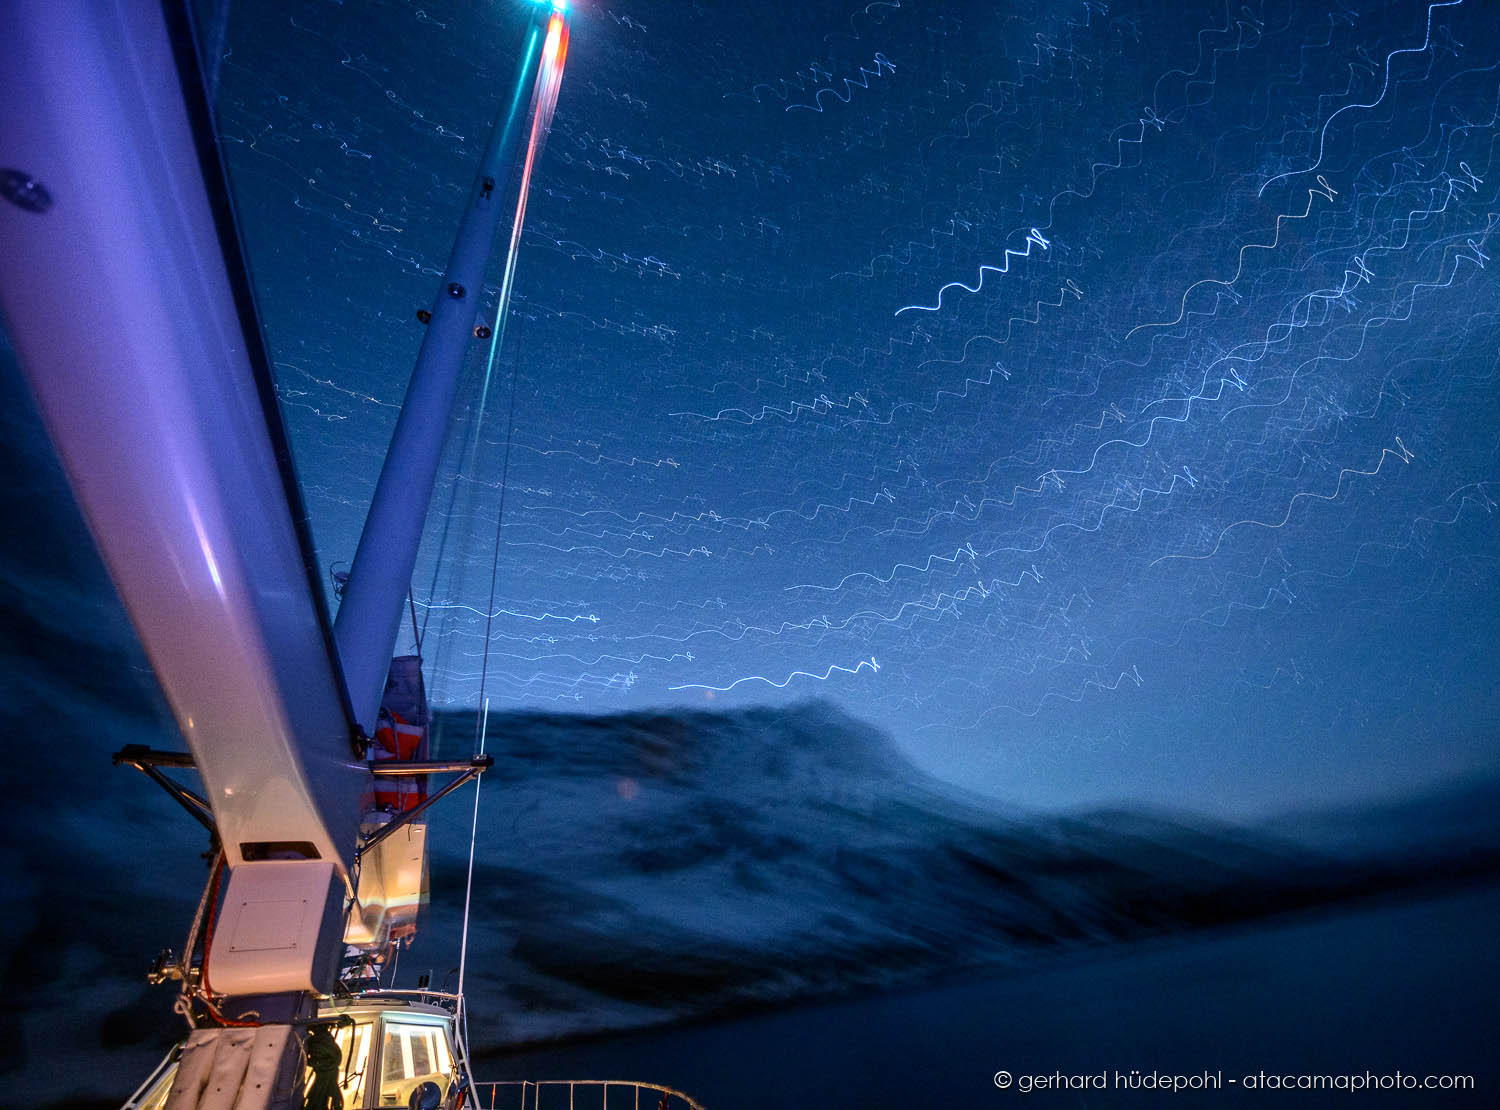 Long exposure from an anchoring yacht at night at South Georgia Island. The rocking and rotating of the boat produces the lines of stars.